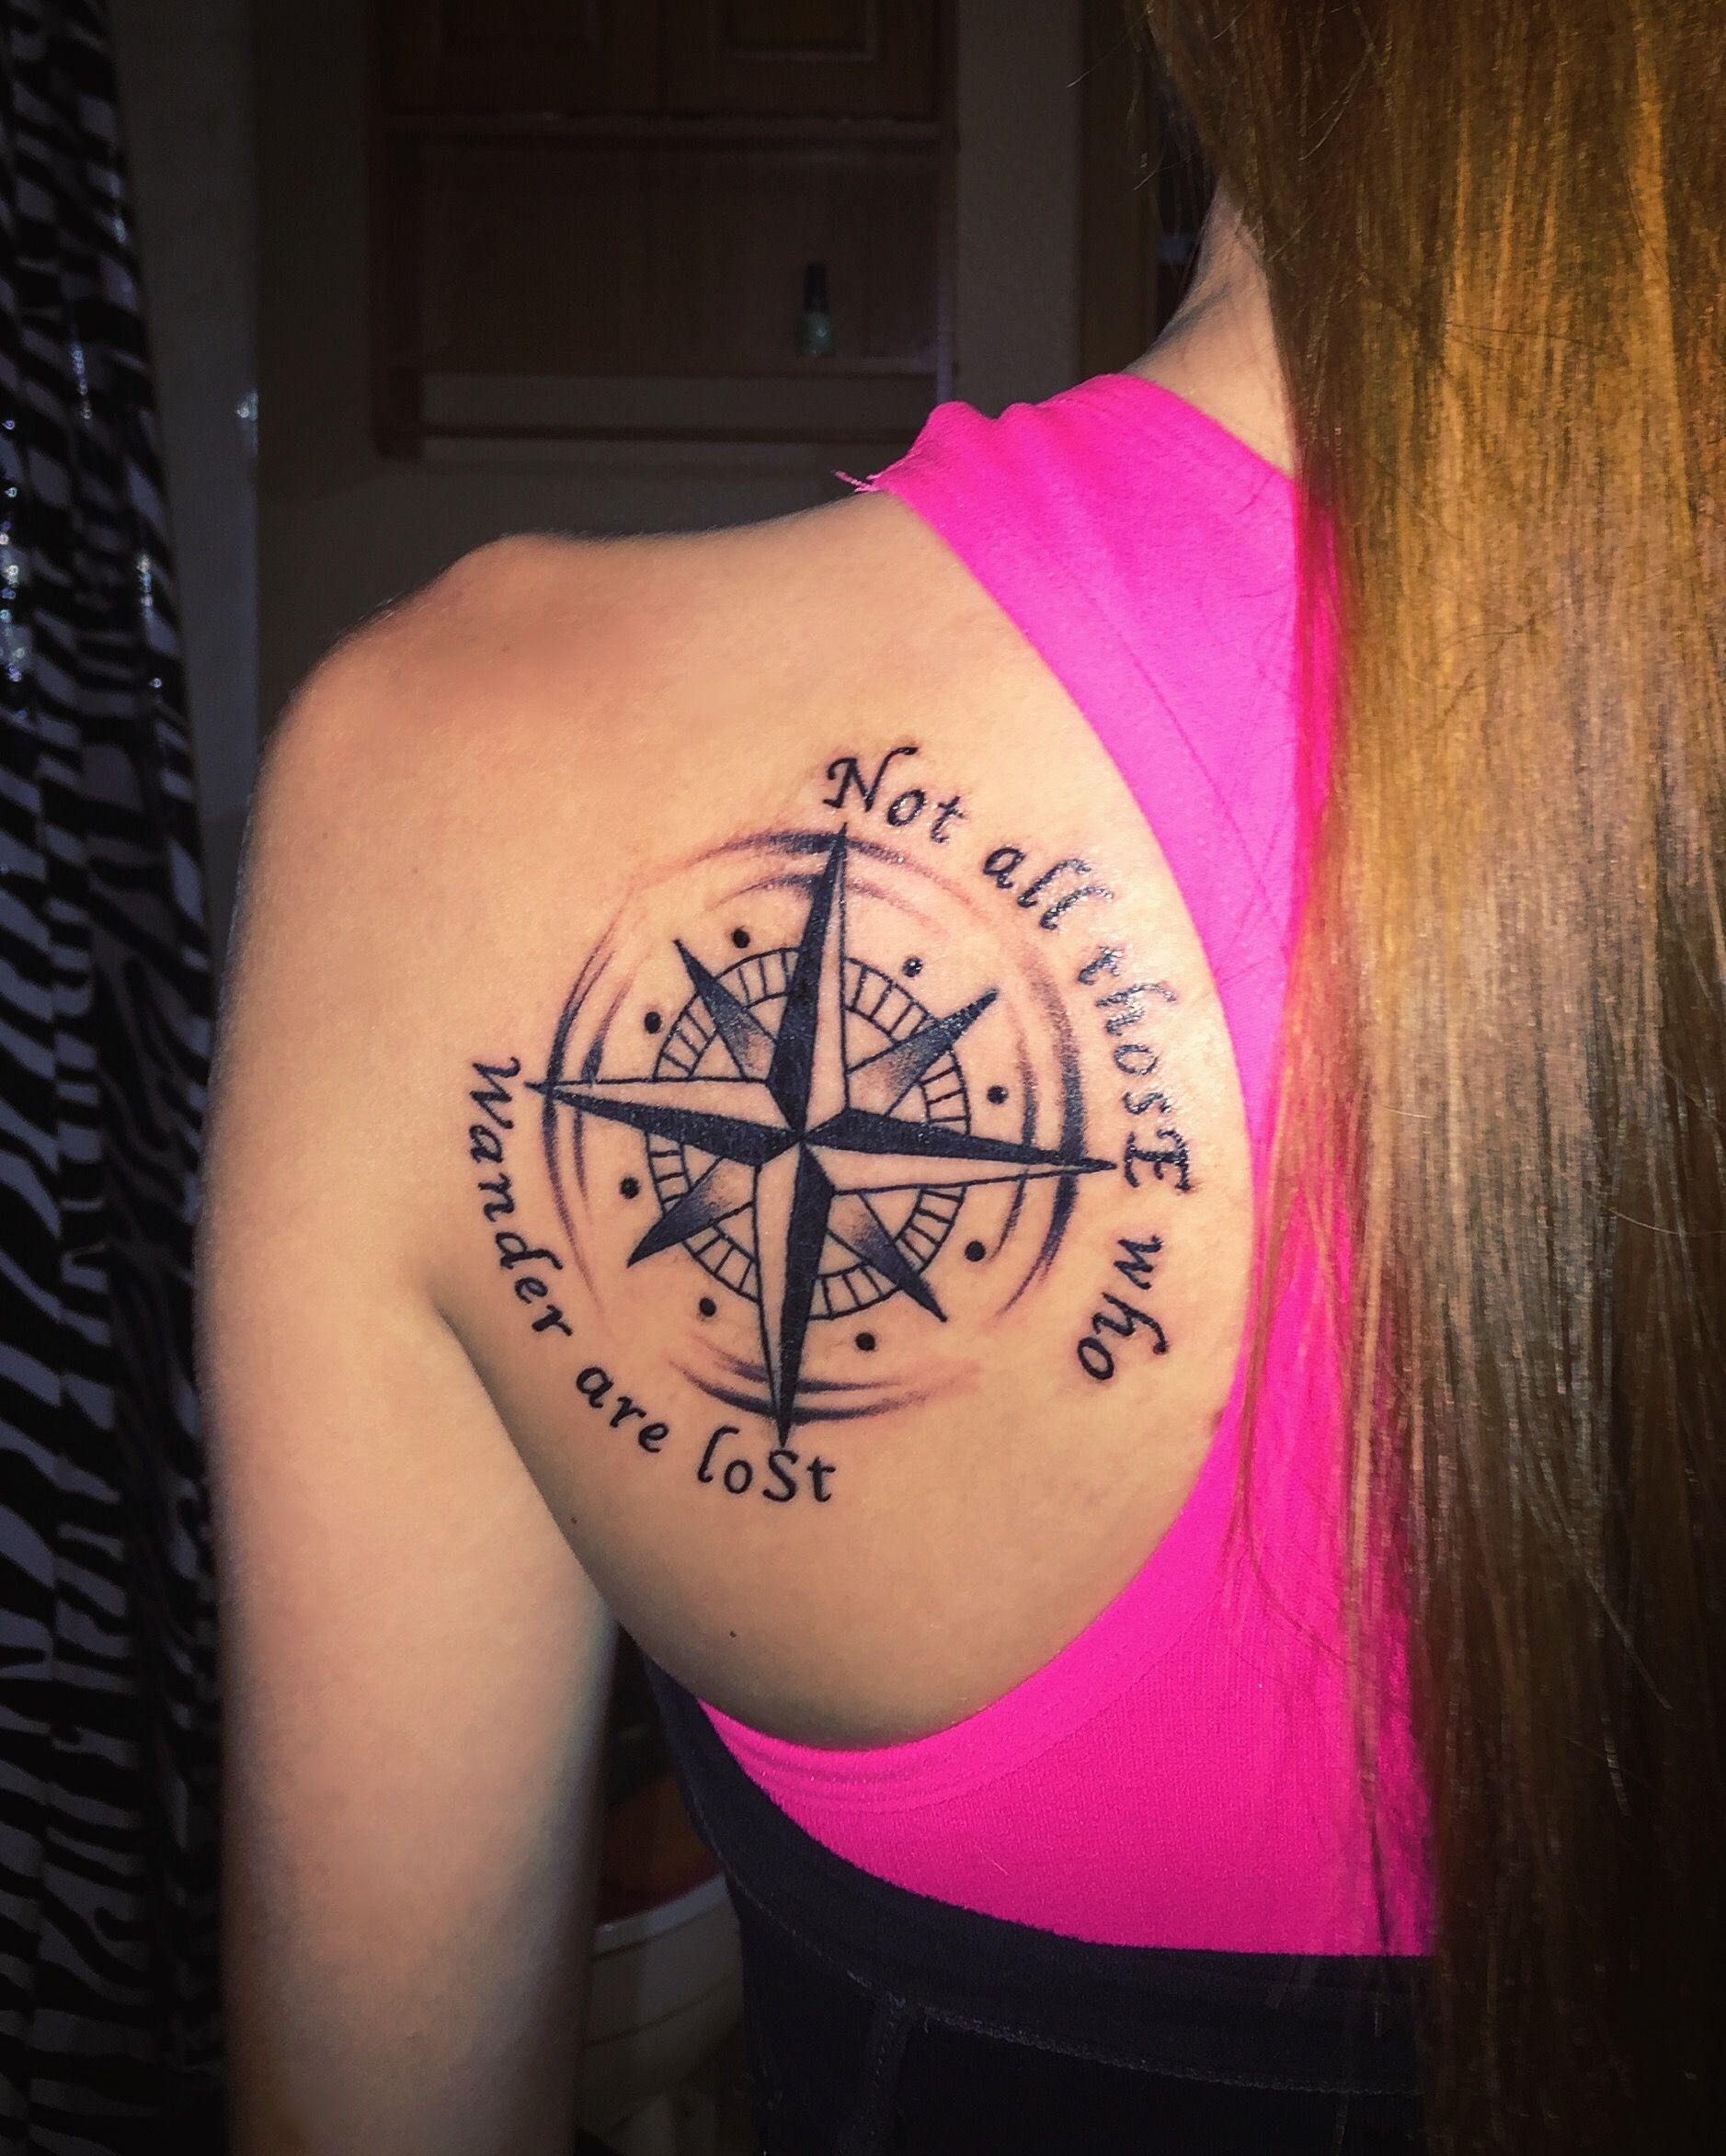 Not All Those Who Wander Are Lost Tattoo Compass Compass Tattoo Not All Those Who Wander Are Lost Tattoos Tattoos For Daughters Lost Tattoo Compass Tattoo